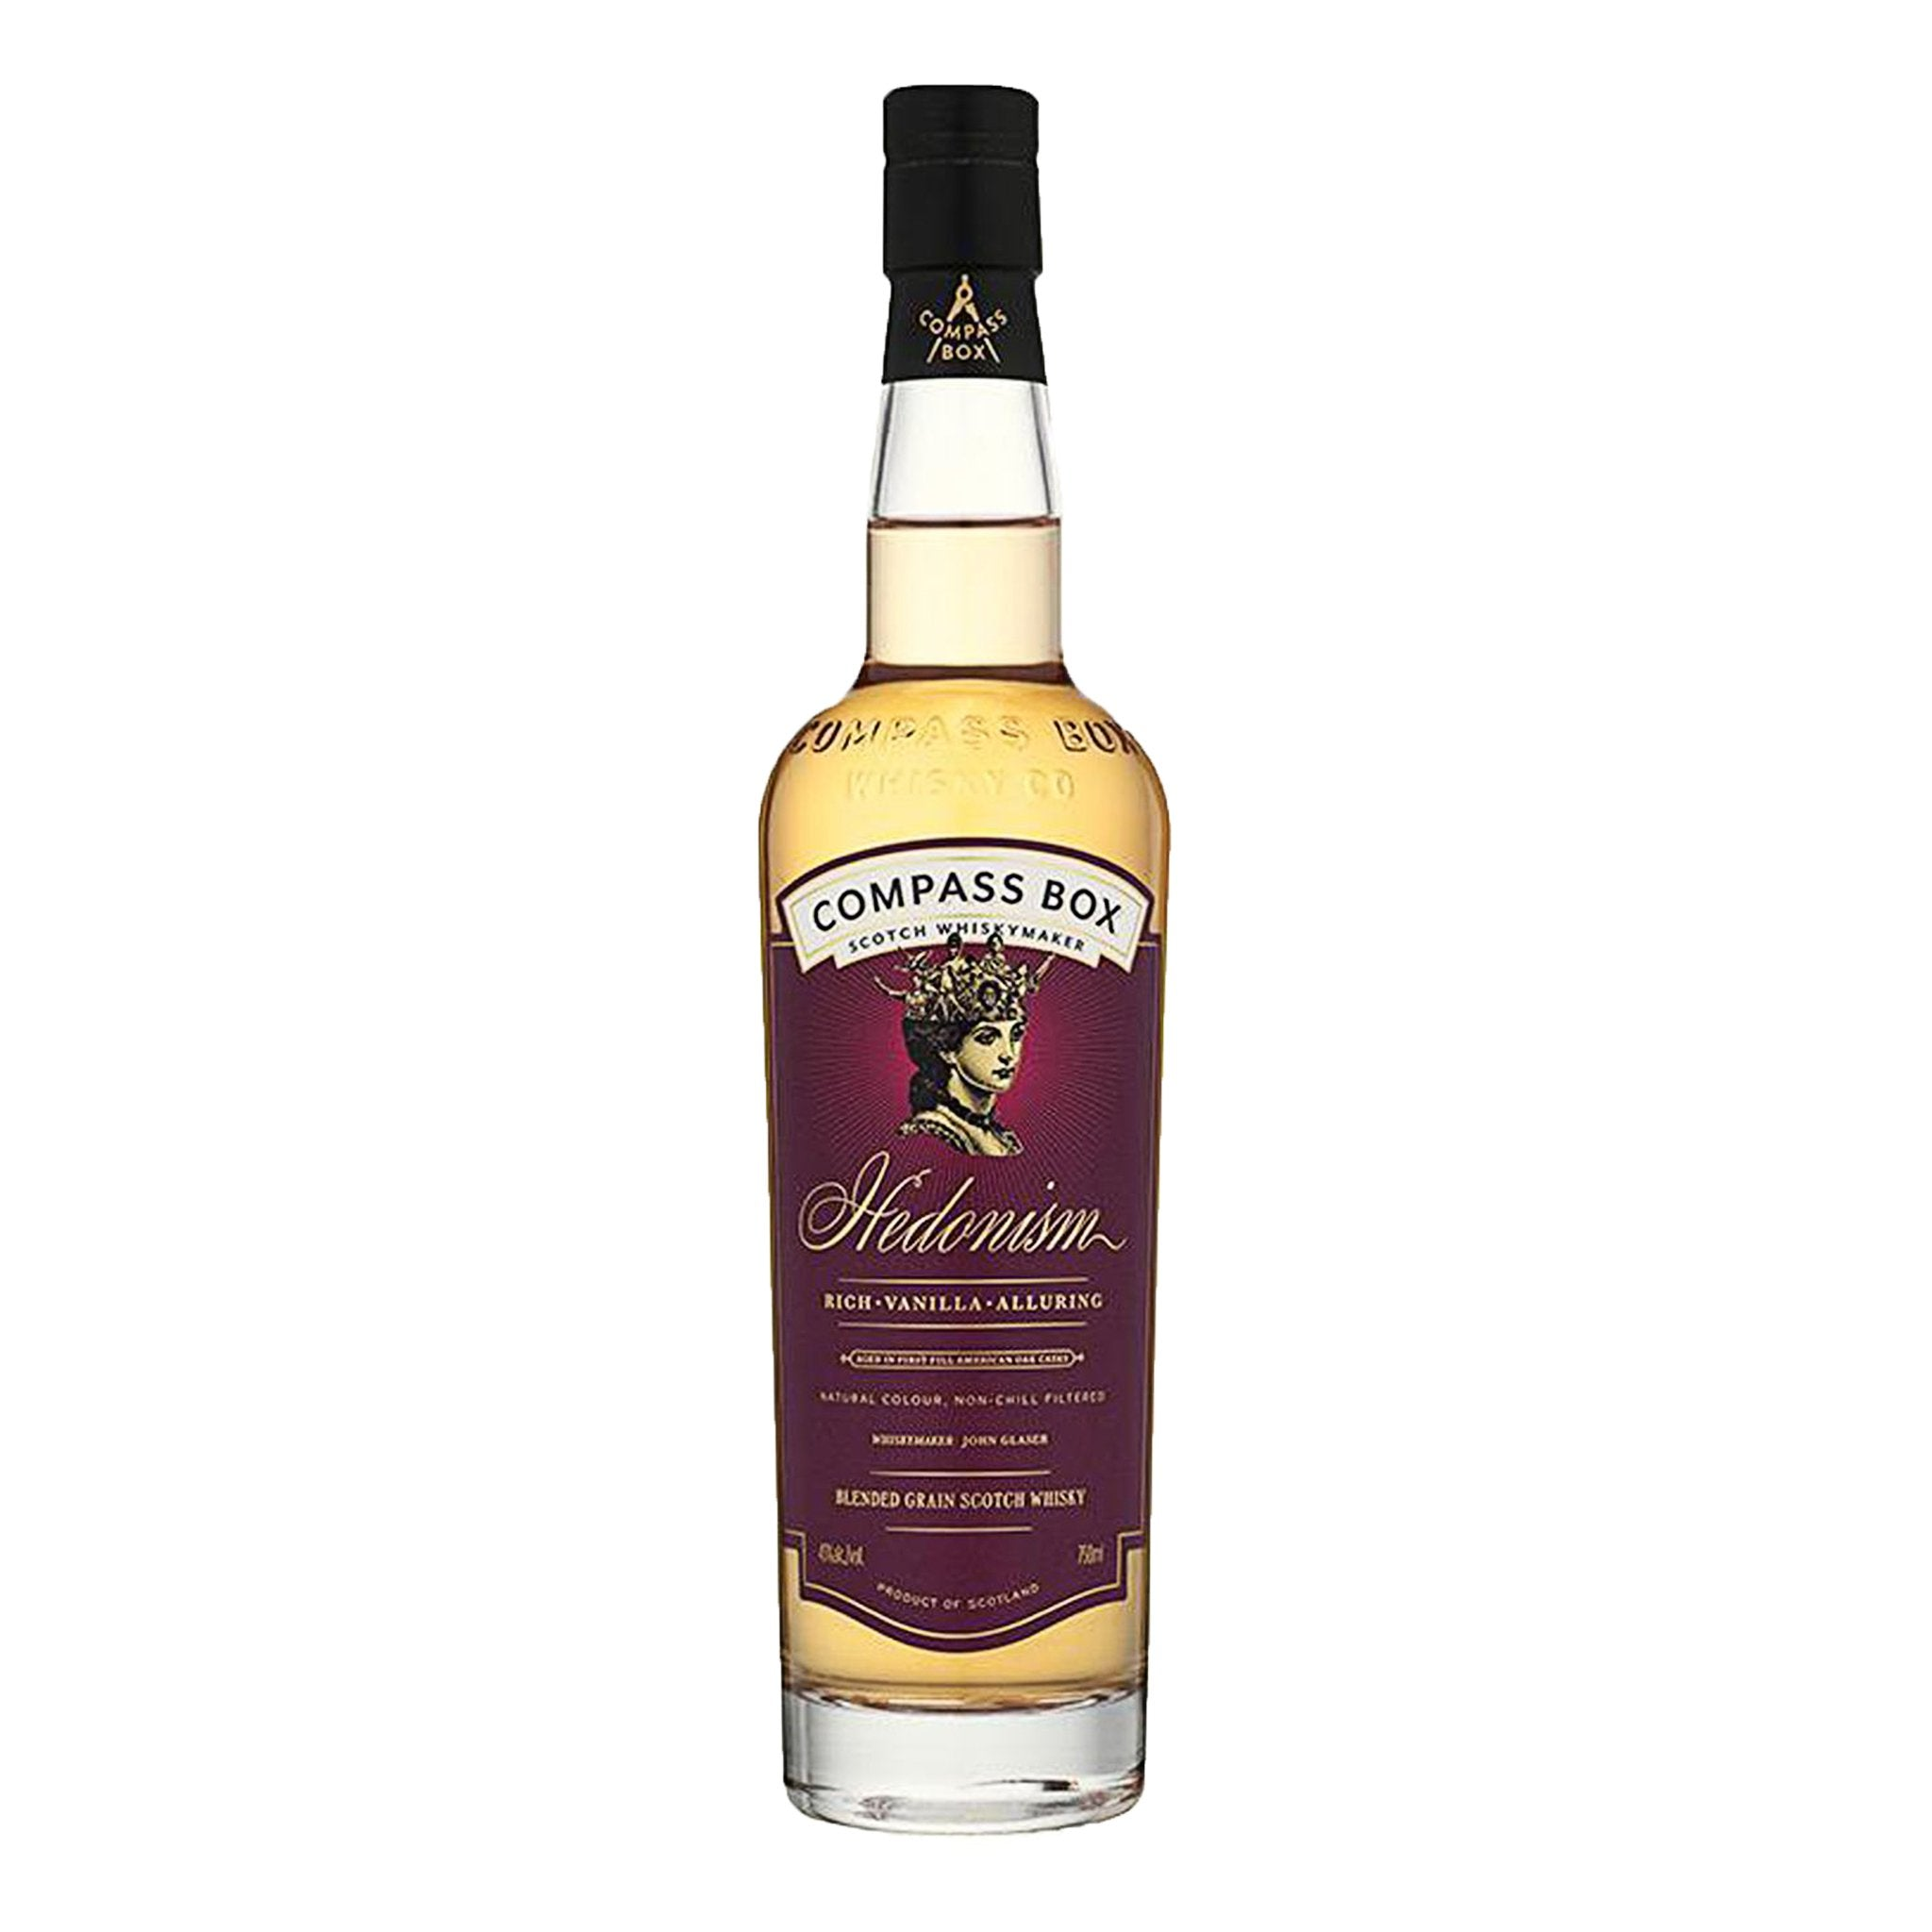 Compass Box Hedonism Blended Grain Scotch Whisky 70cl, Food, Beverages & Tobacco by Drinks Shop